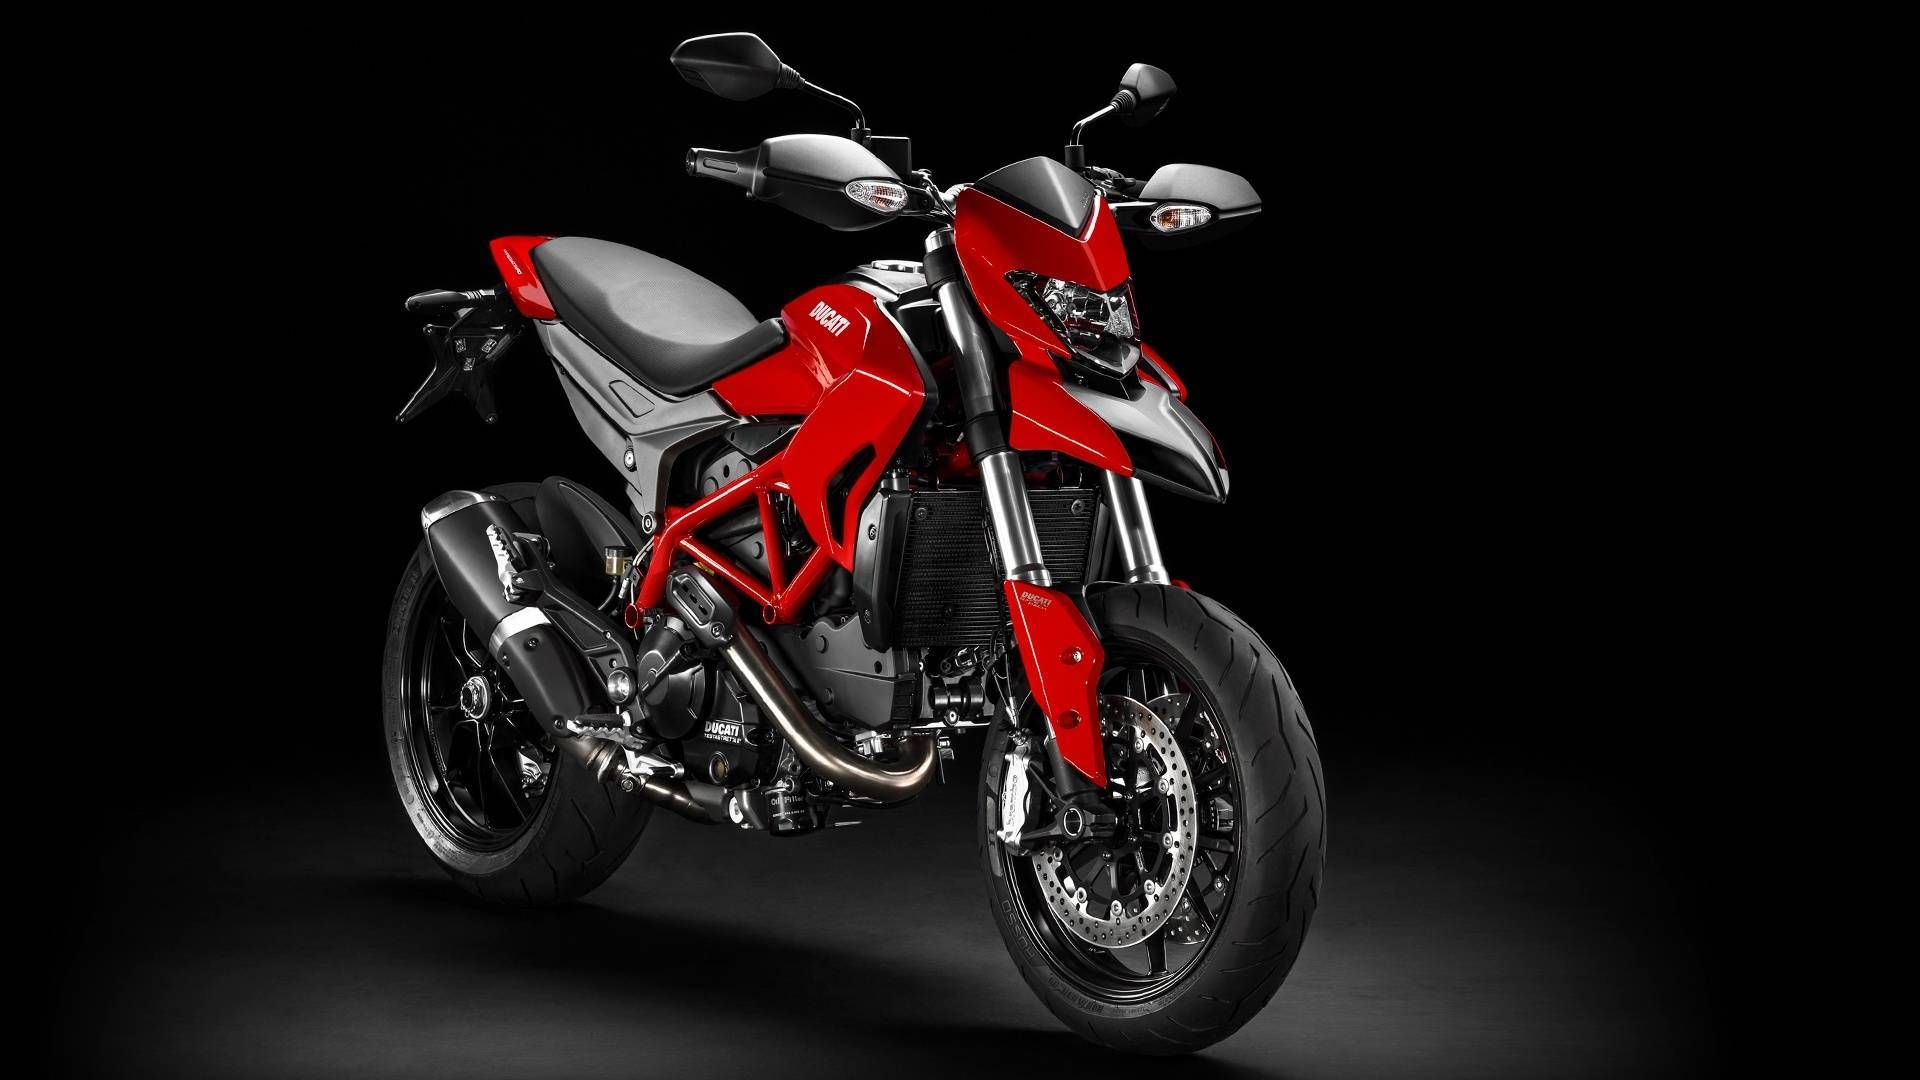 Ducati Hypermotard 939 Price Mileage Review Ducati Bikes